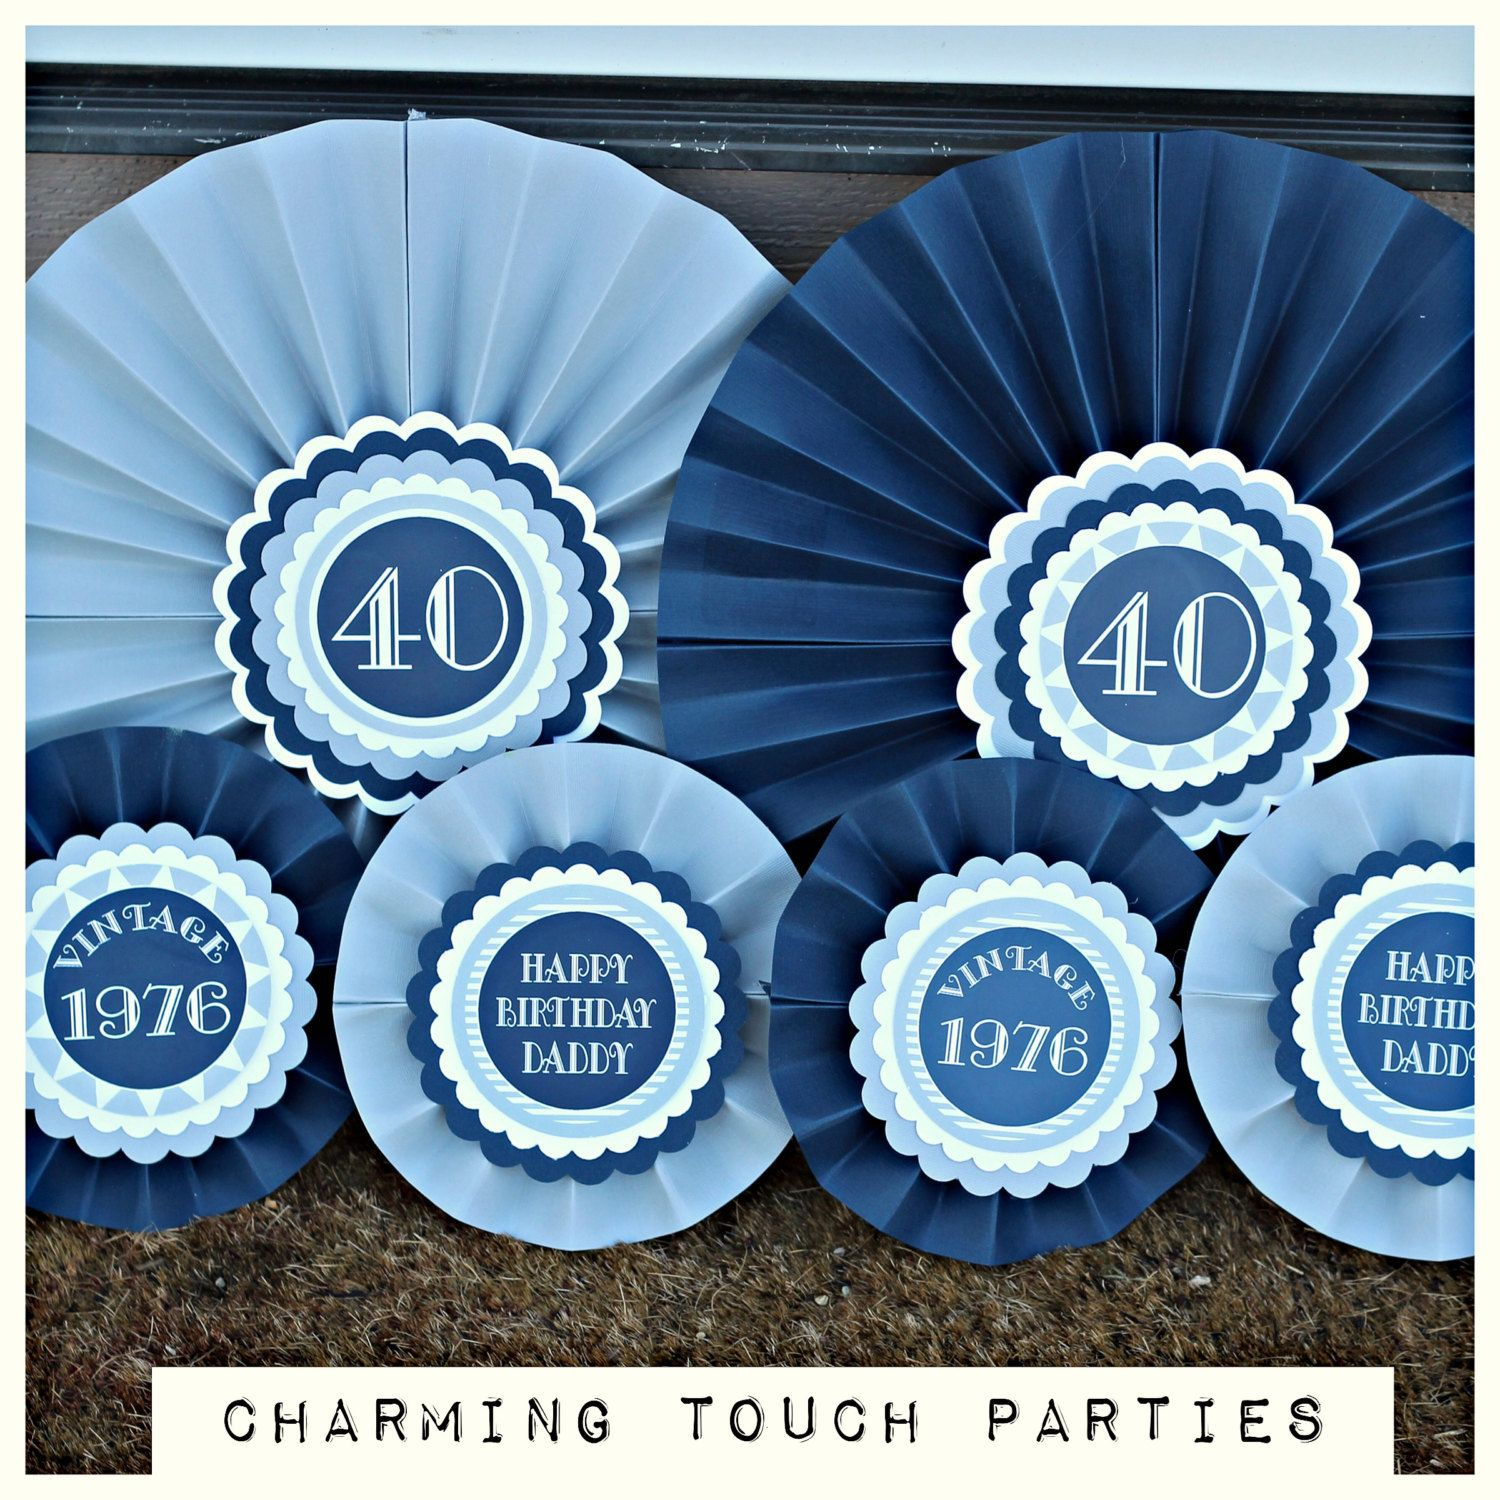 40th Birthday Party Decorations Masculine Navy Blue And Grey Rosettes Paper Fans Fully Assembled Customizable By CharmingTouchParties